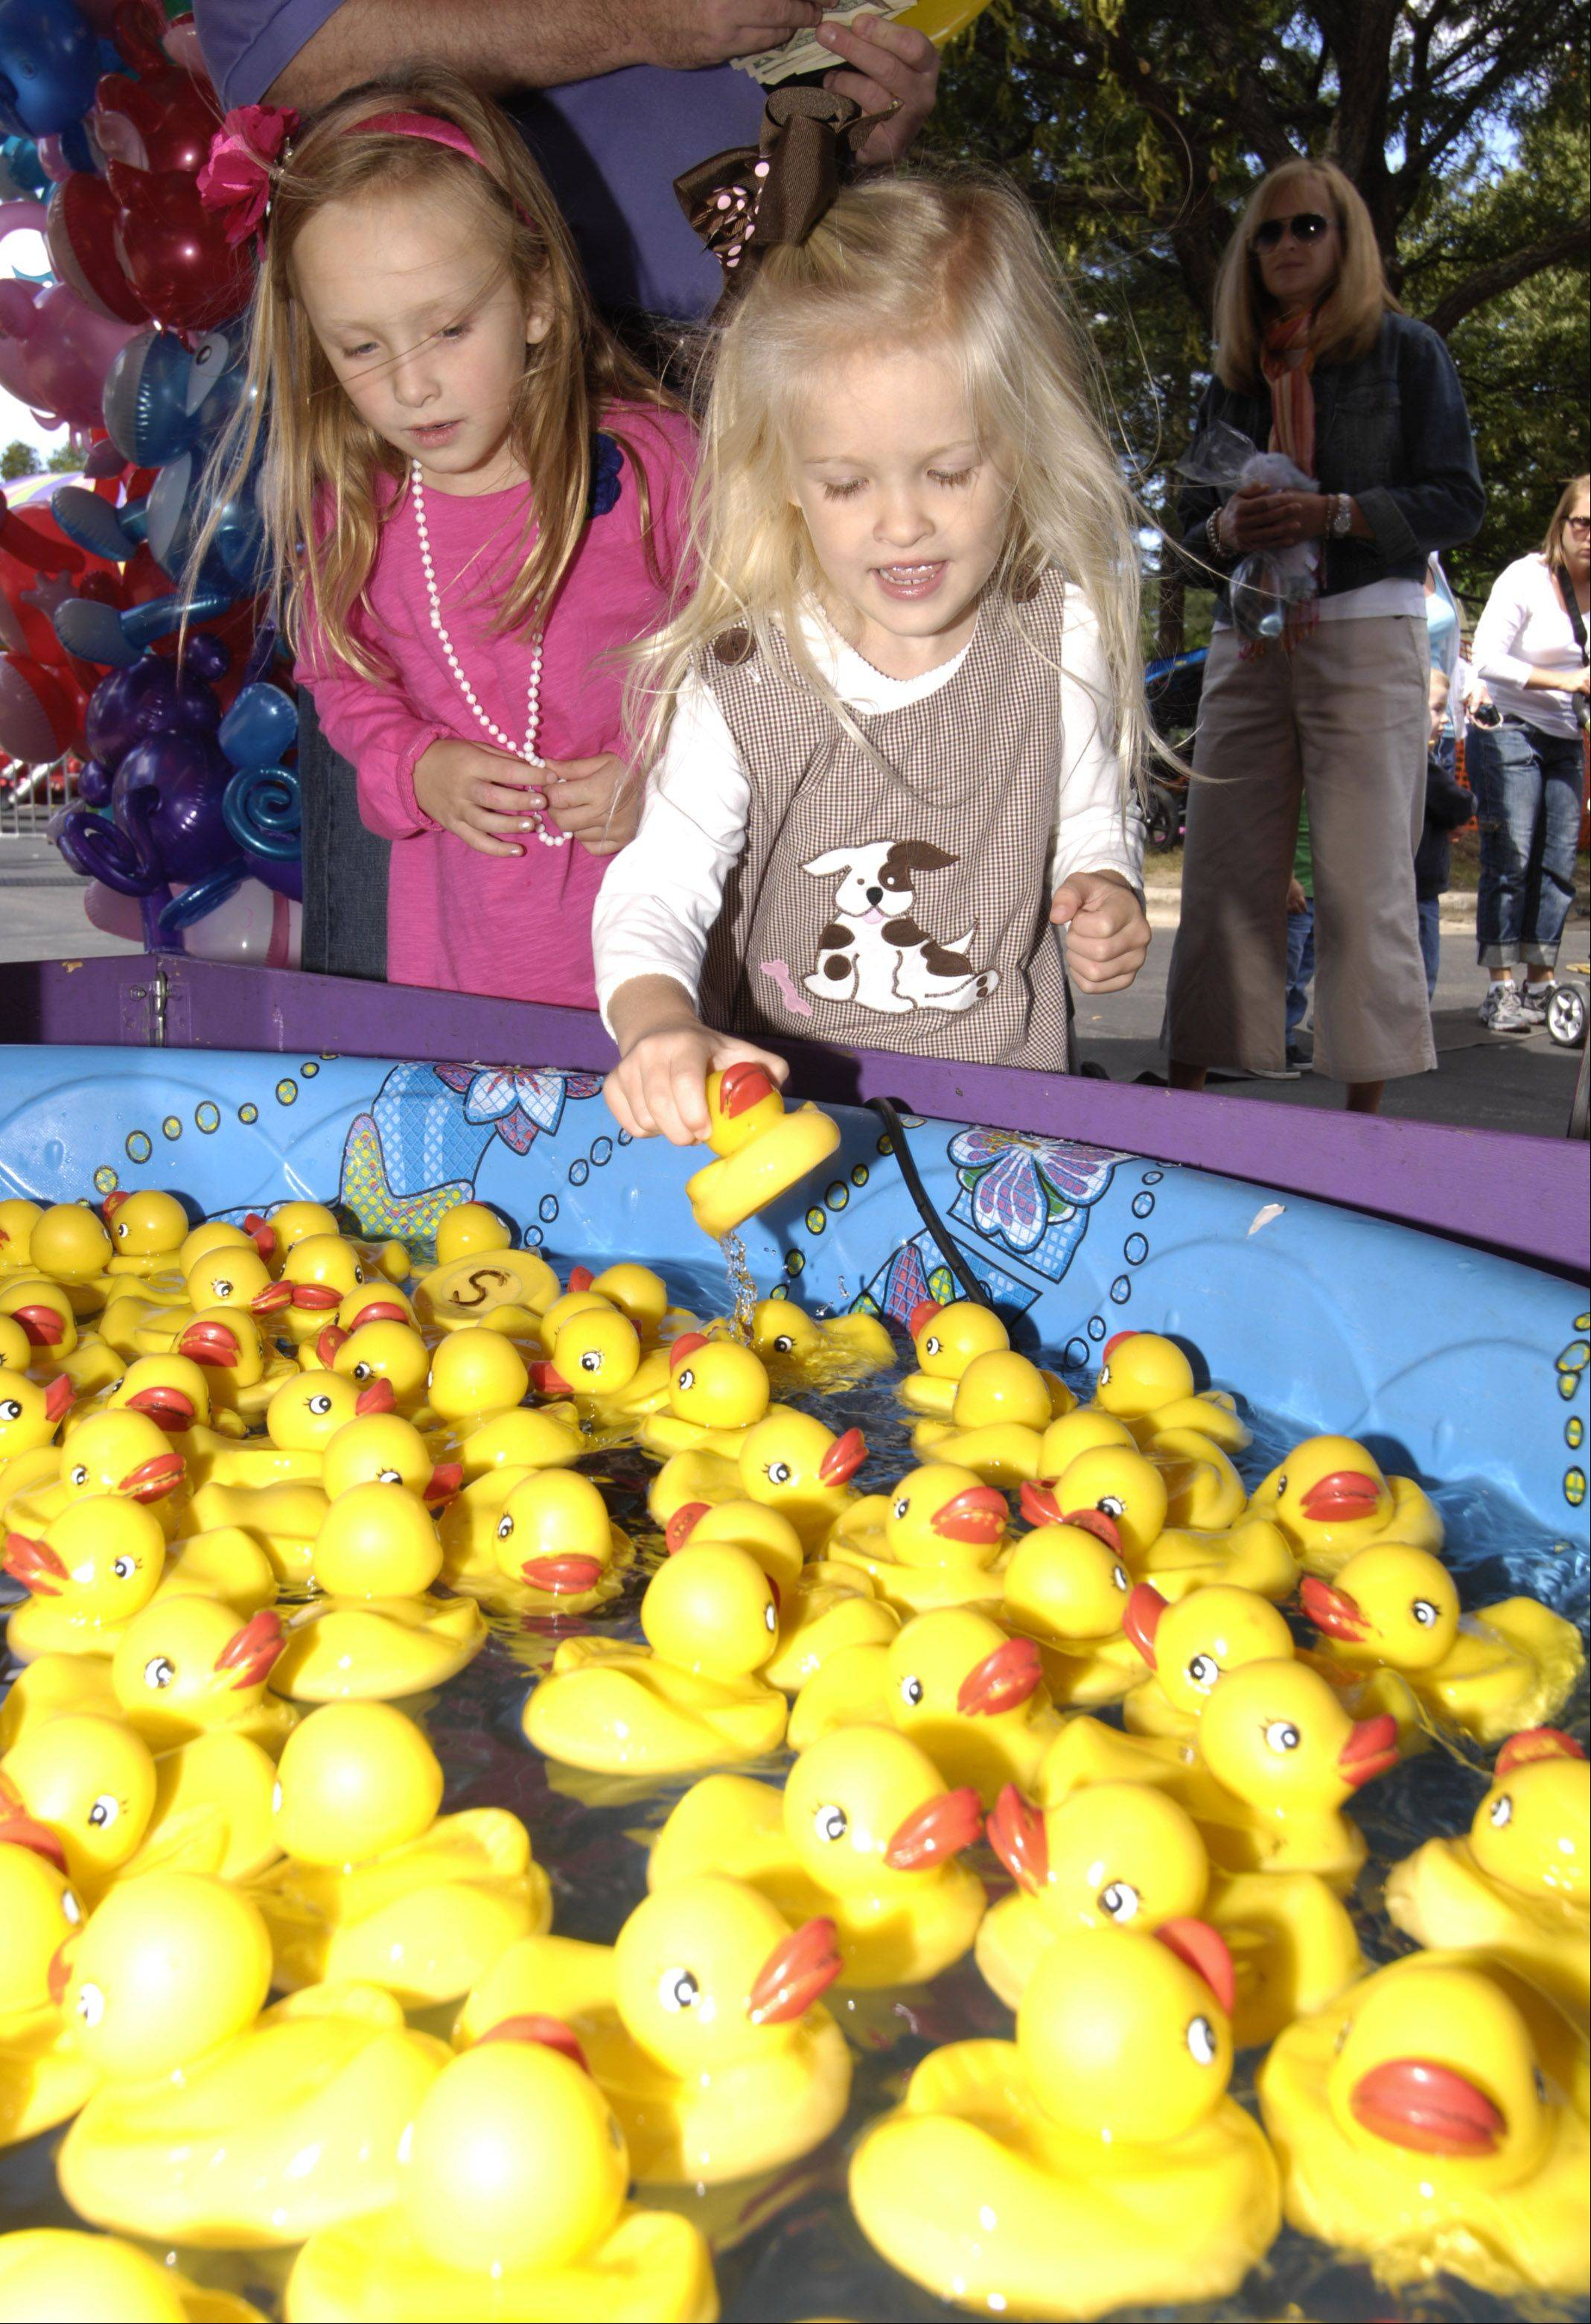 Ava and Amelia Schlappy of Naperville pick ducks to win a prize during the Last Fling carnival in Naperville.